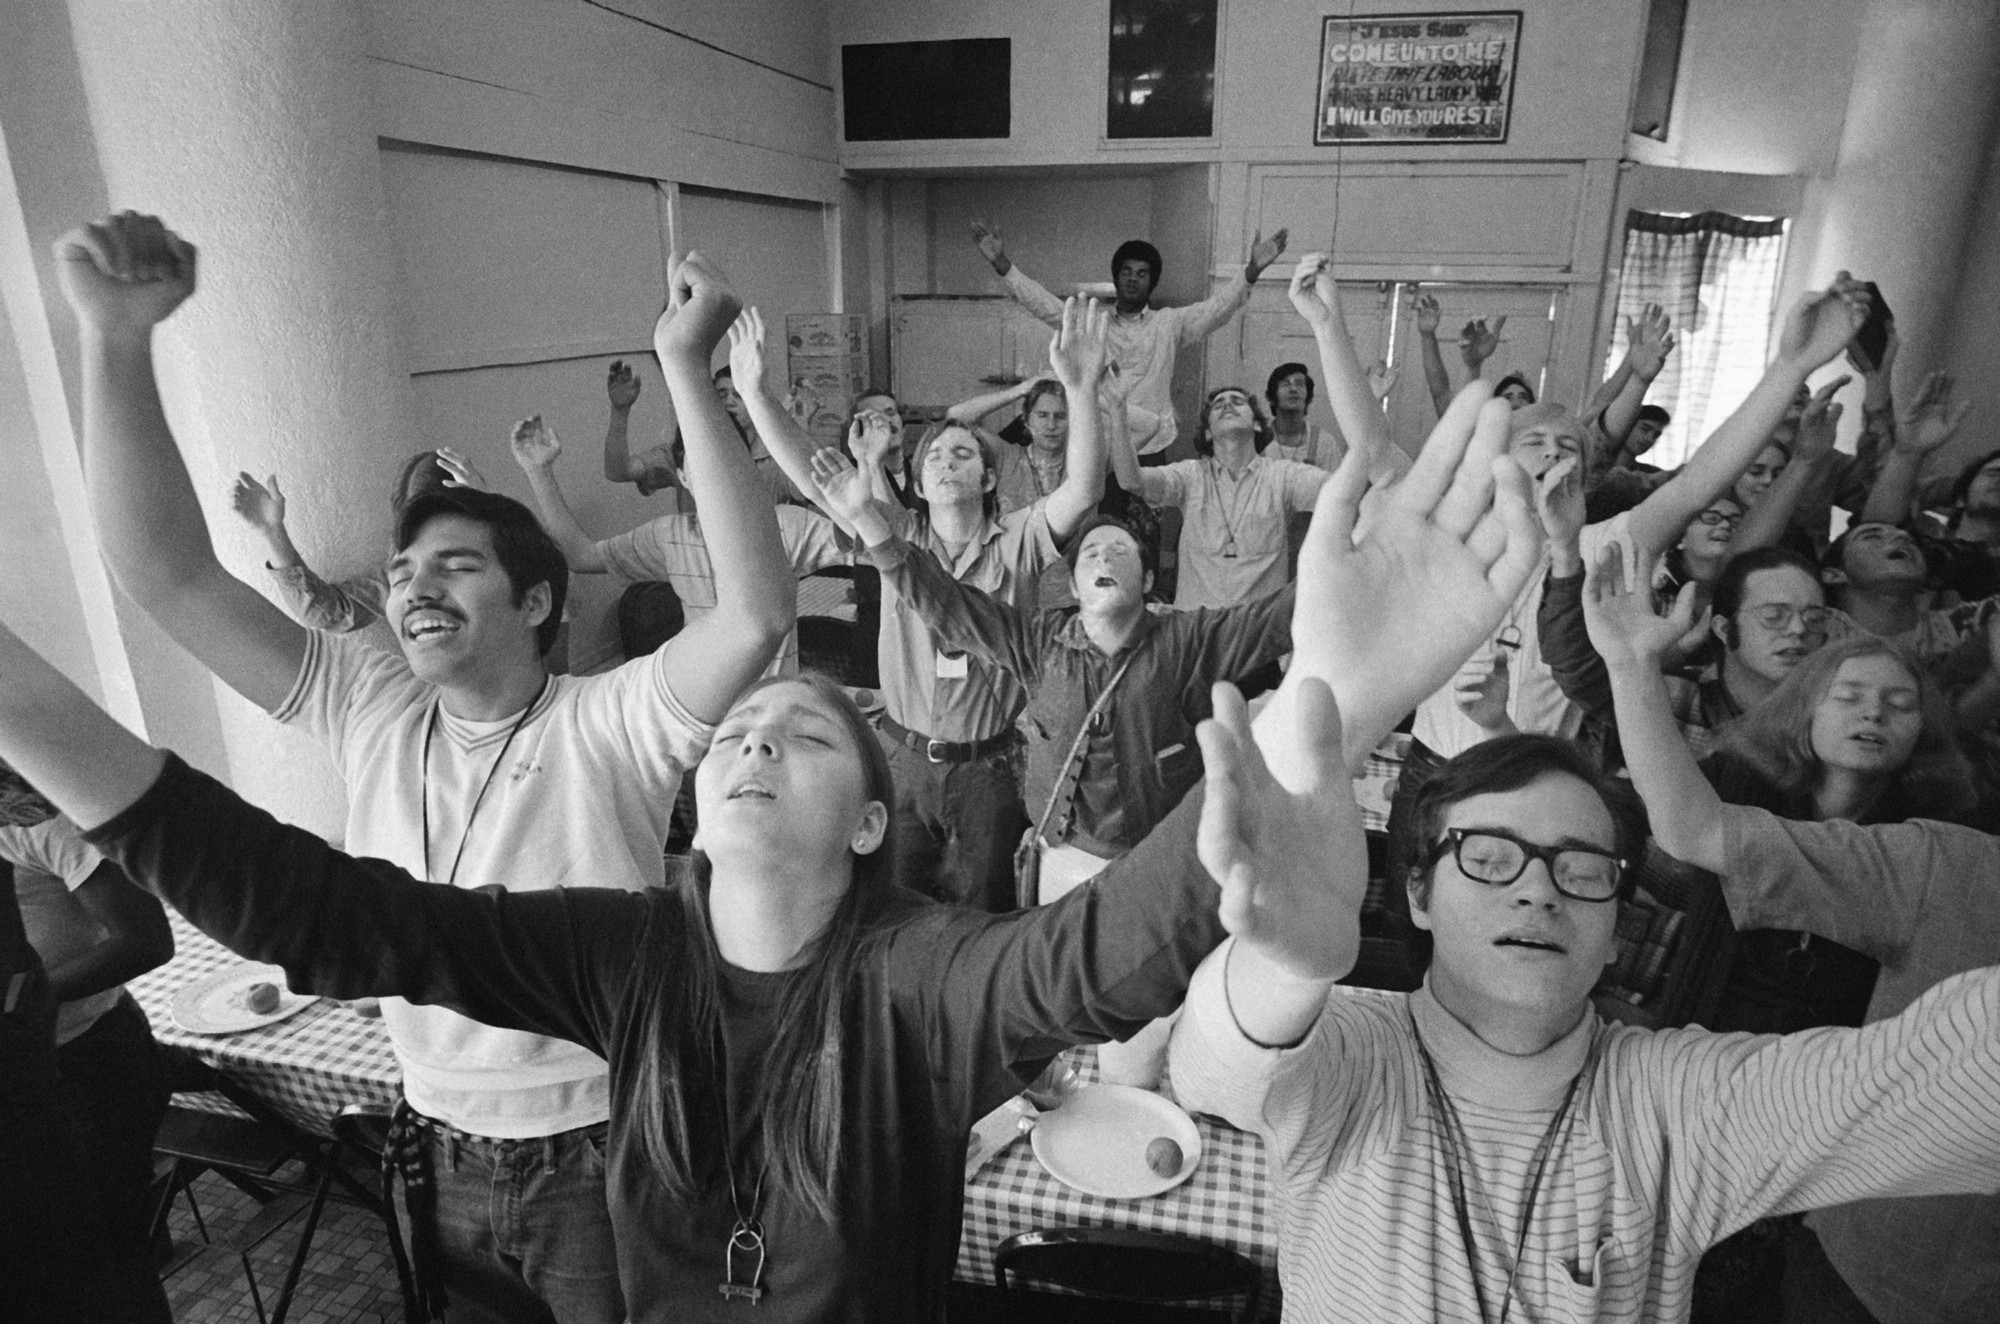 the hippie christian cult that encouraged with children is